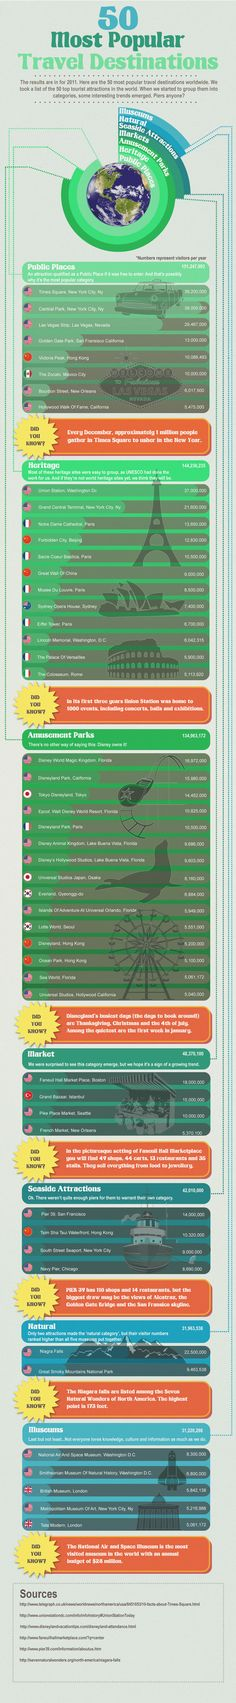 50 Most Popular Travel Destinations in the World [Infographic]